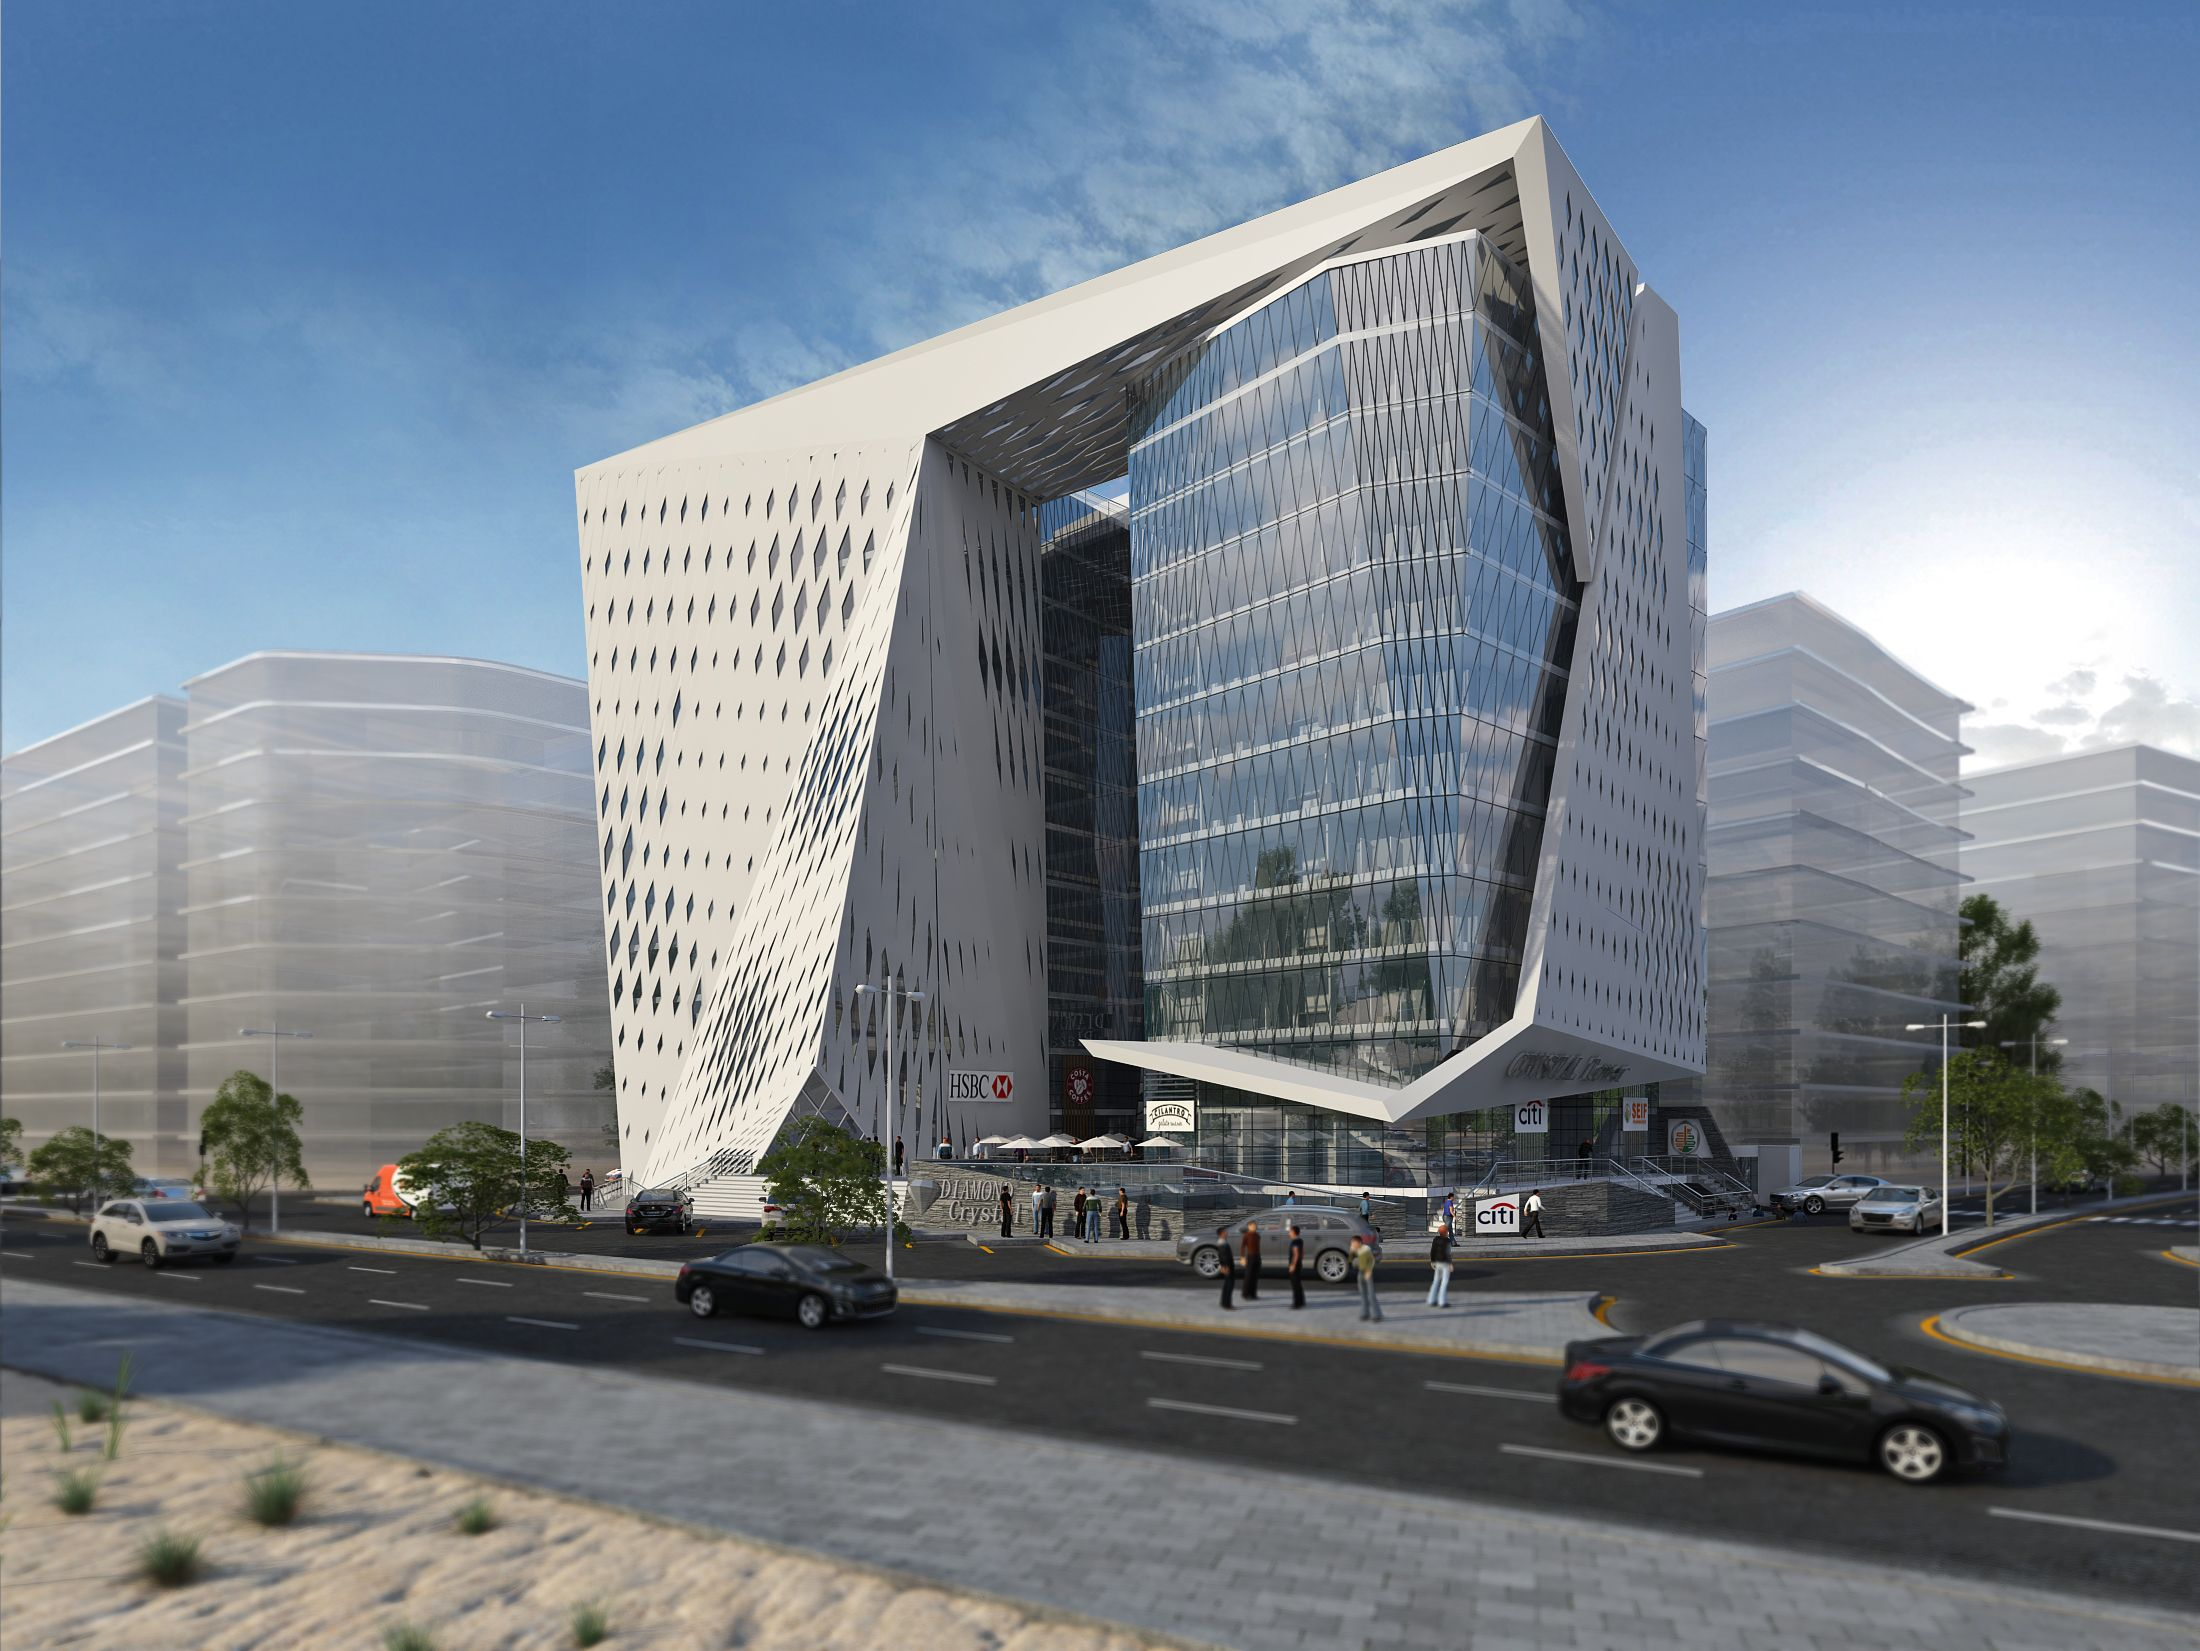 11 Stories Office Building Which Consist Of Clinics And Banks And Pharmacies In Office Building Architecture Facade Architecture Modern Architecture Building